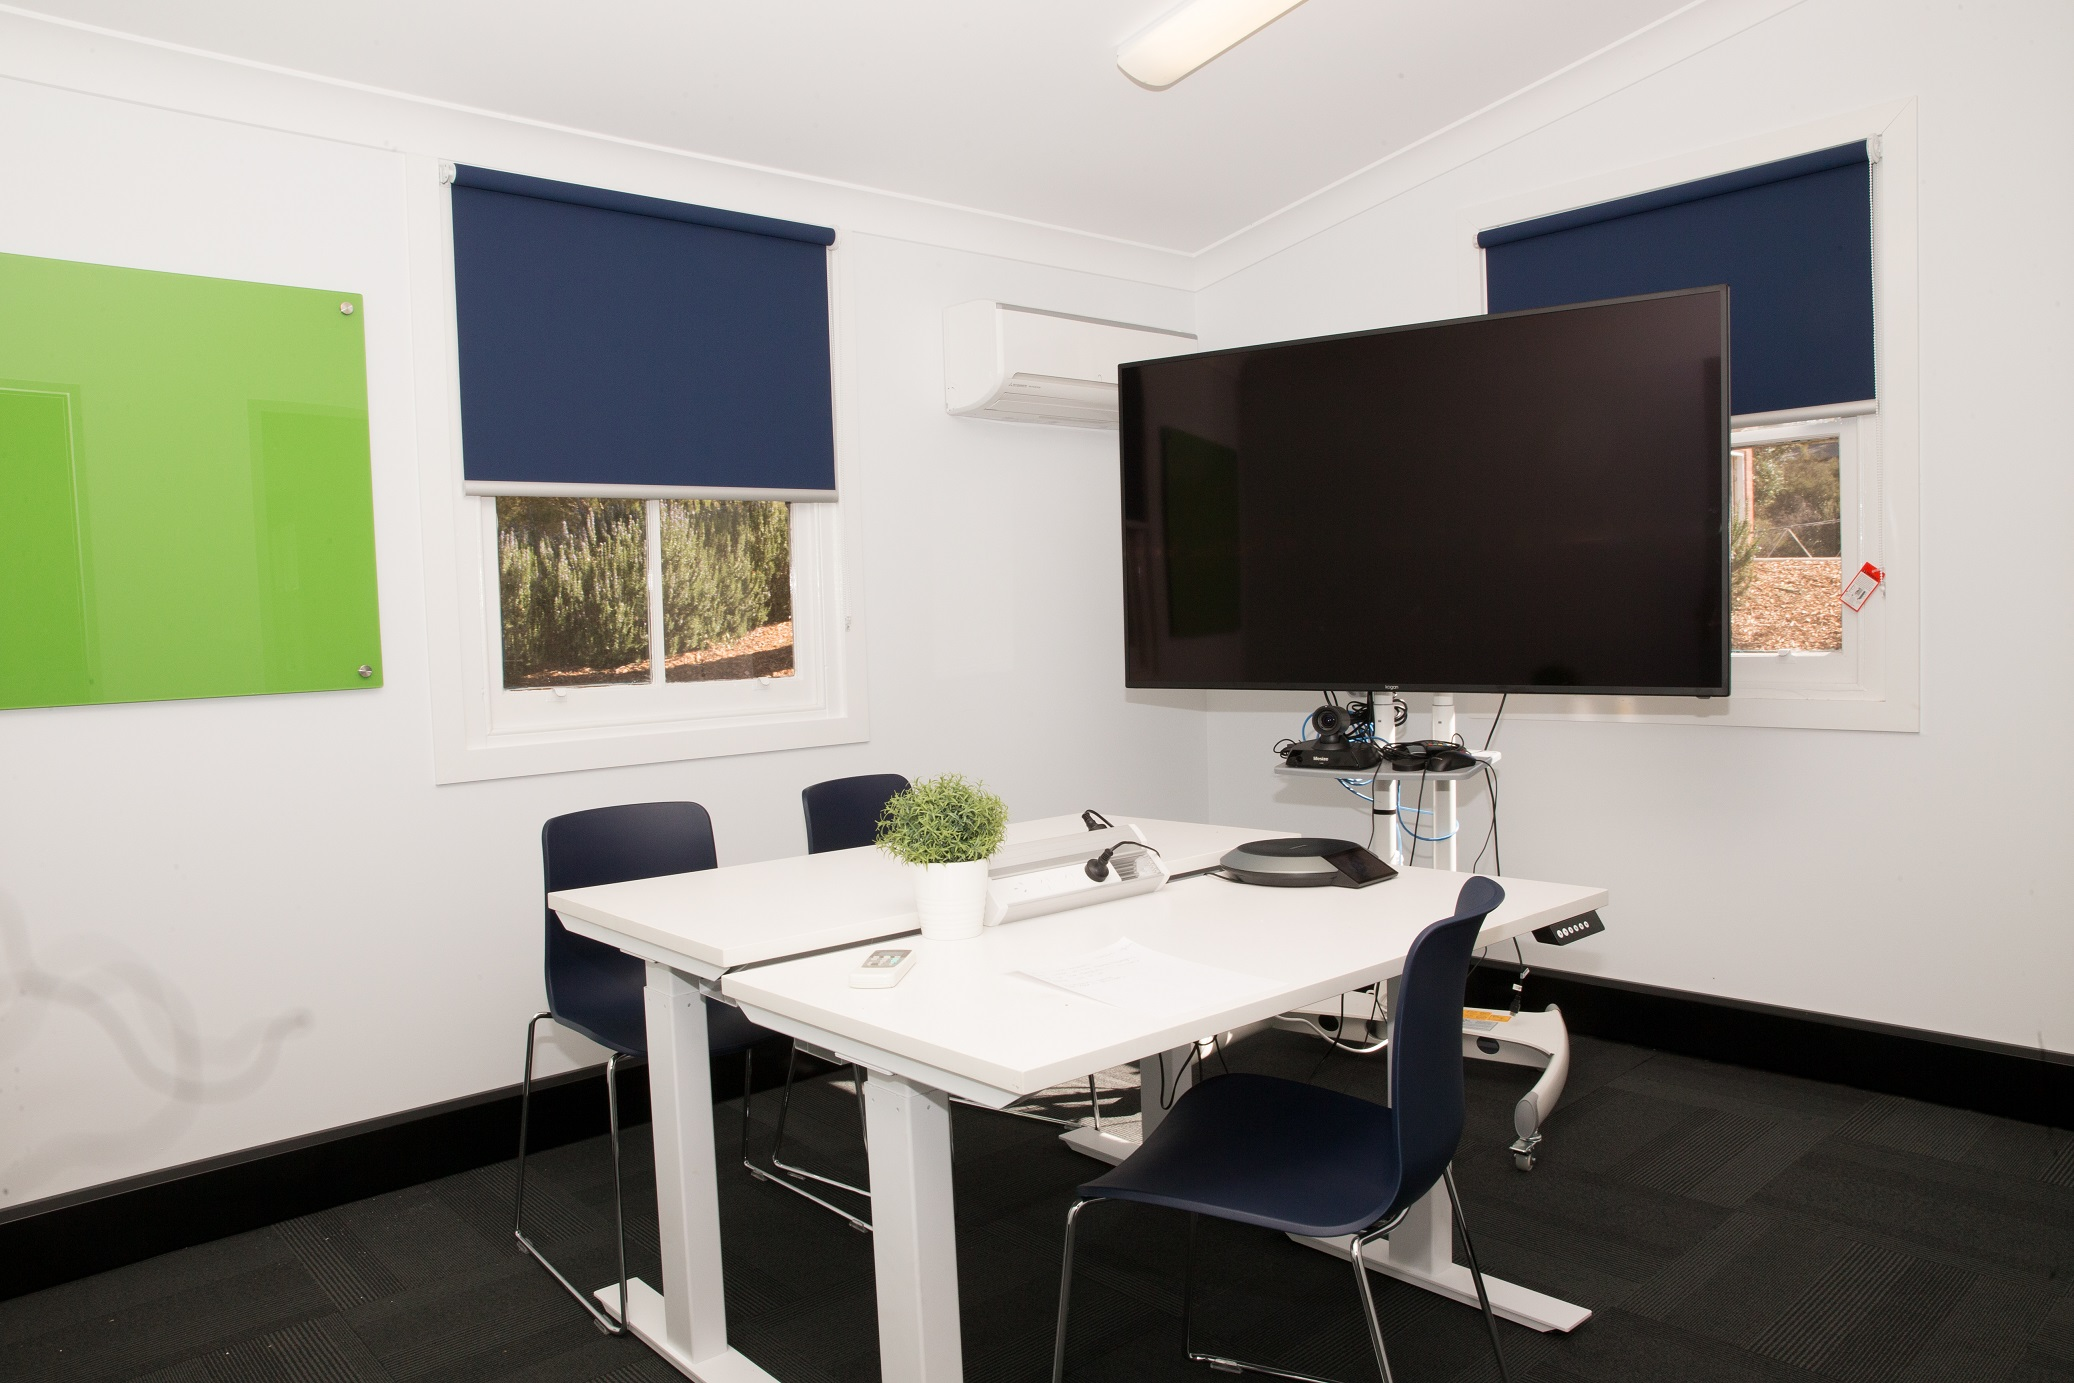 Conference Room - Small.jpg